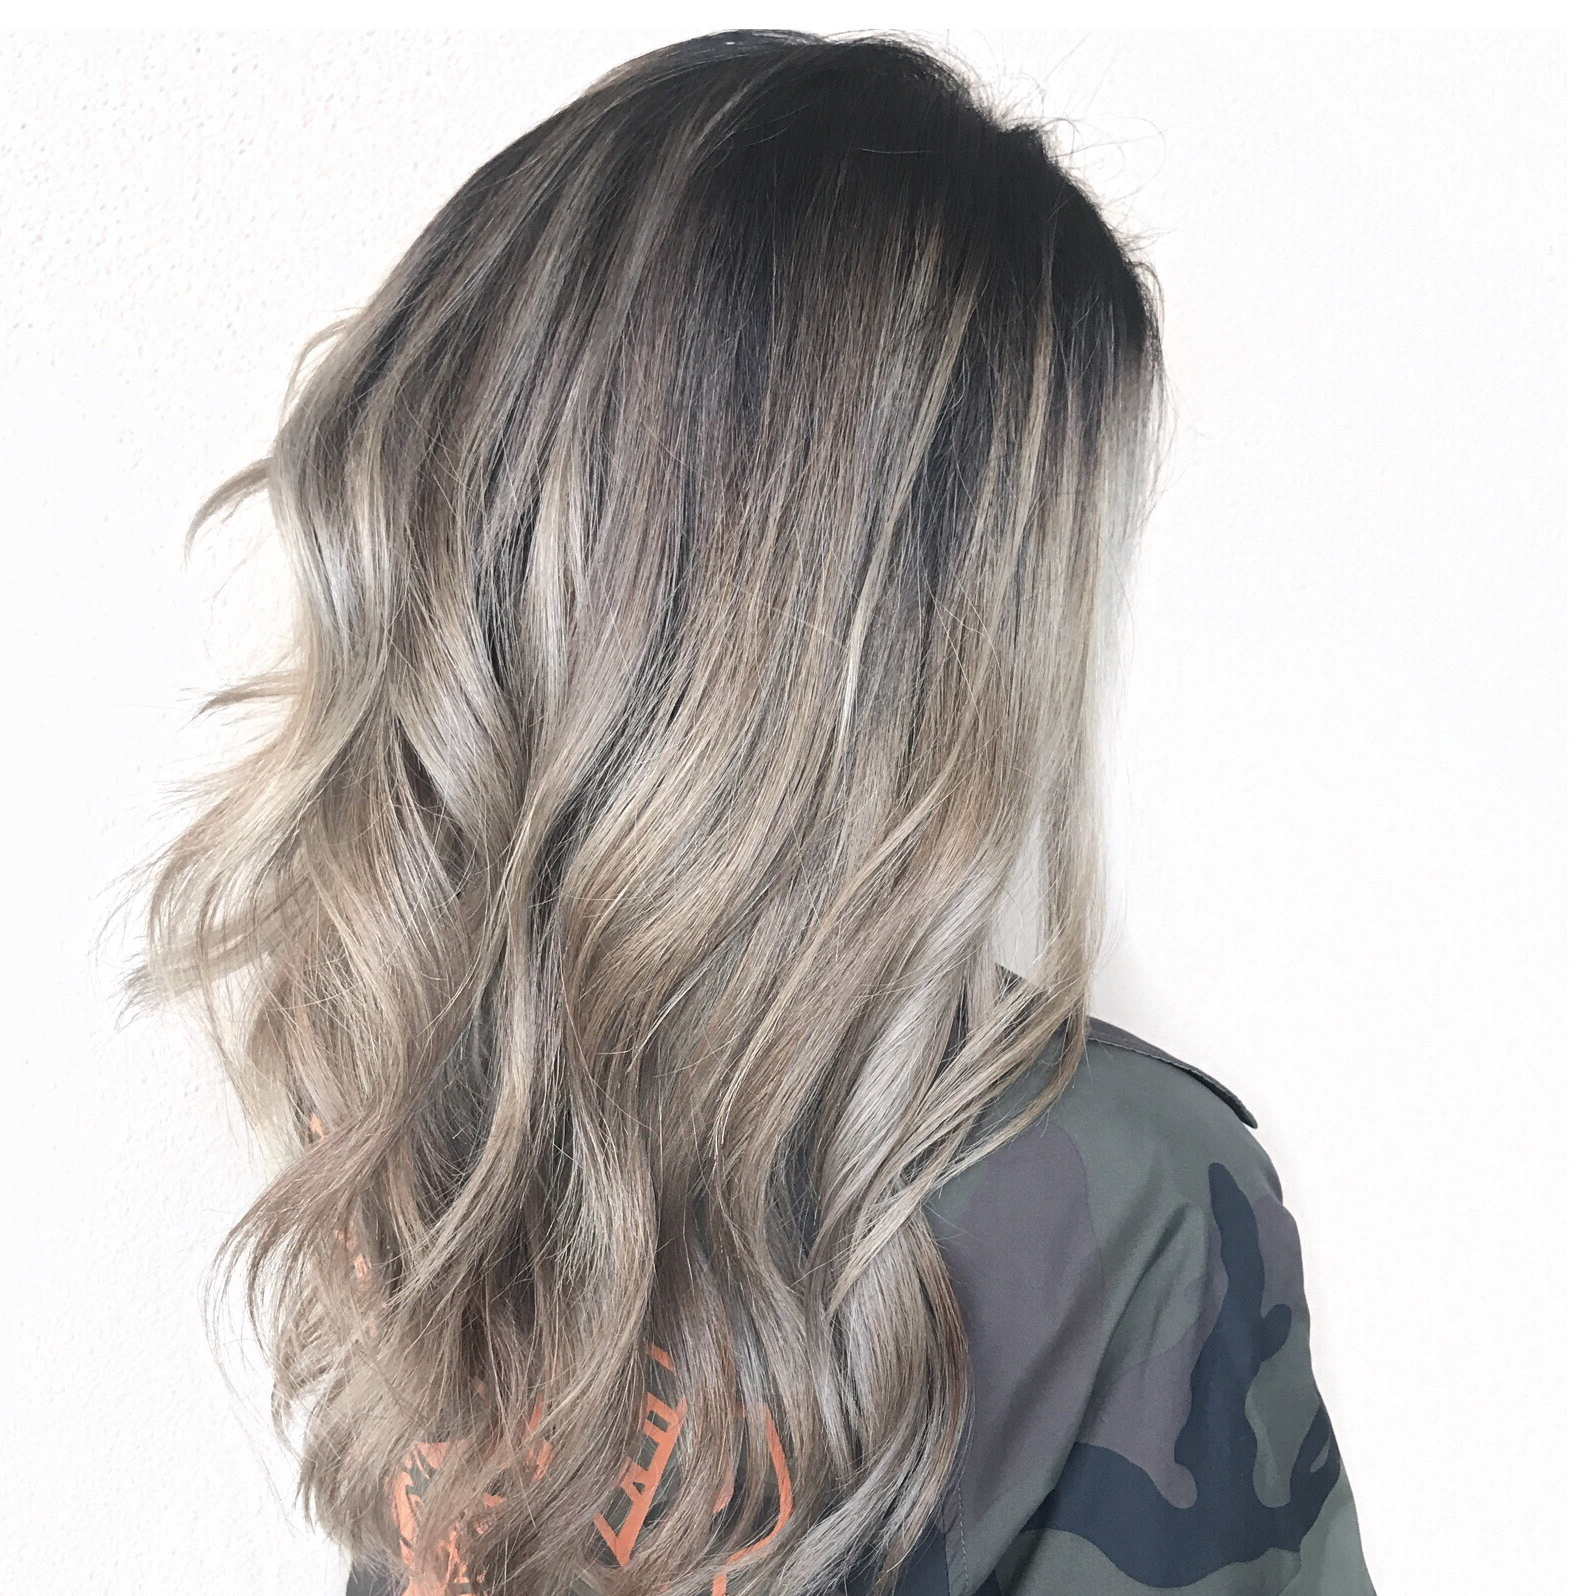 Ash blonde, long layers